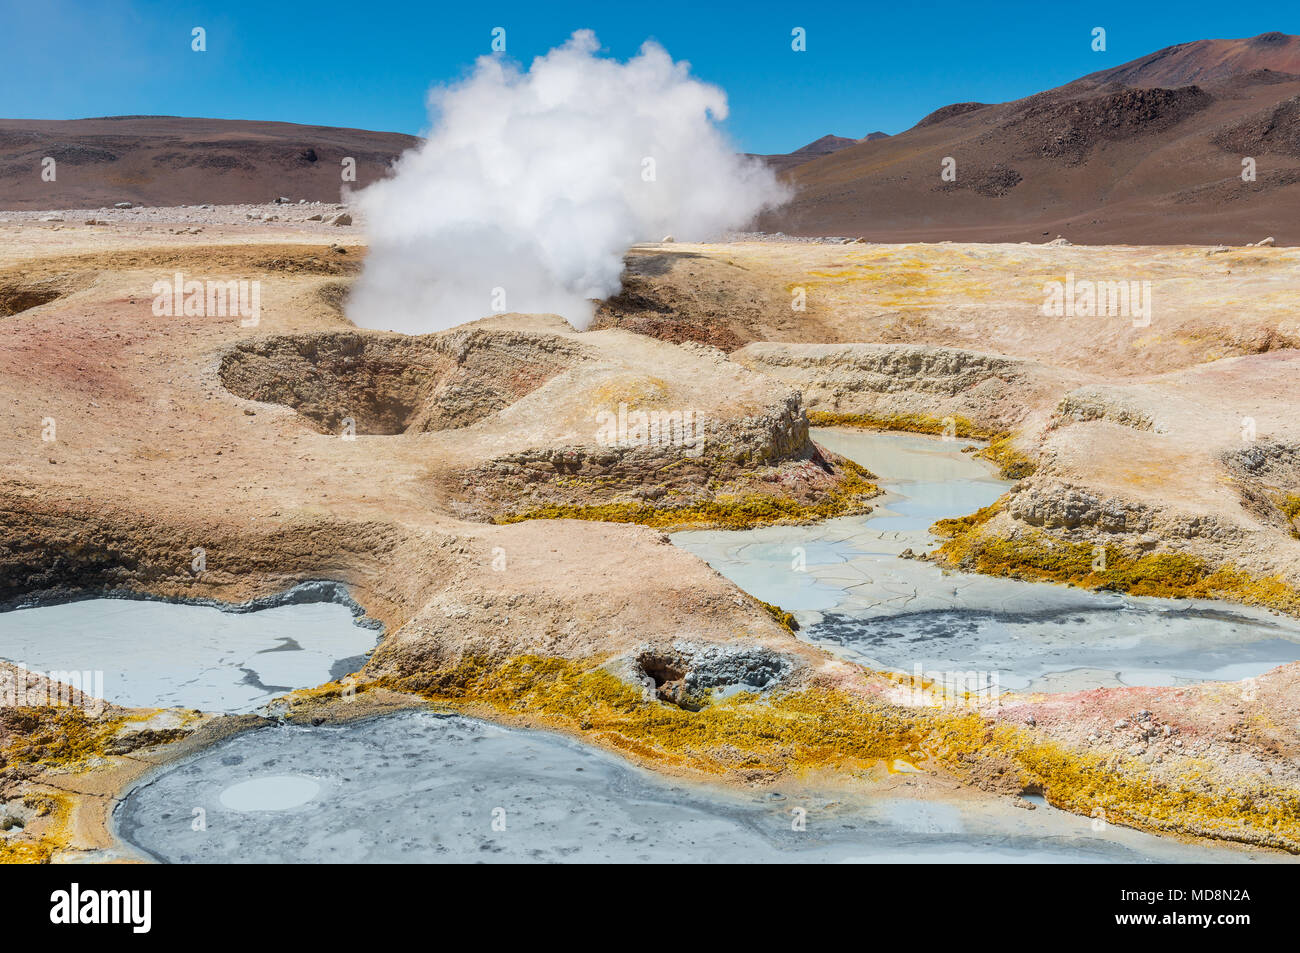 The volcanic activity of Sol de Mañana in Bolivia near the border with Chile and the Uyuni Salt Flat. We see mud pits and fumaroles with water vapor. - Stock Image